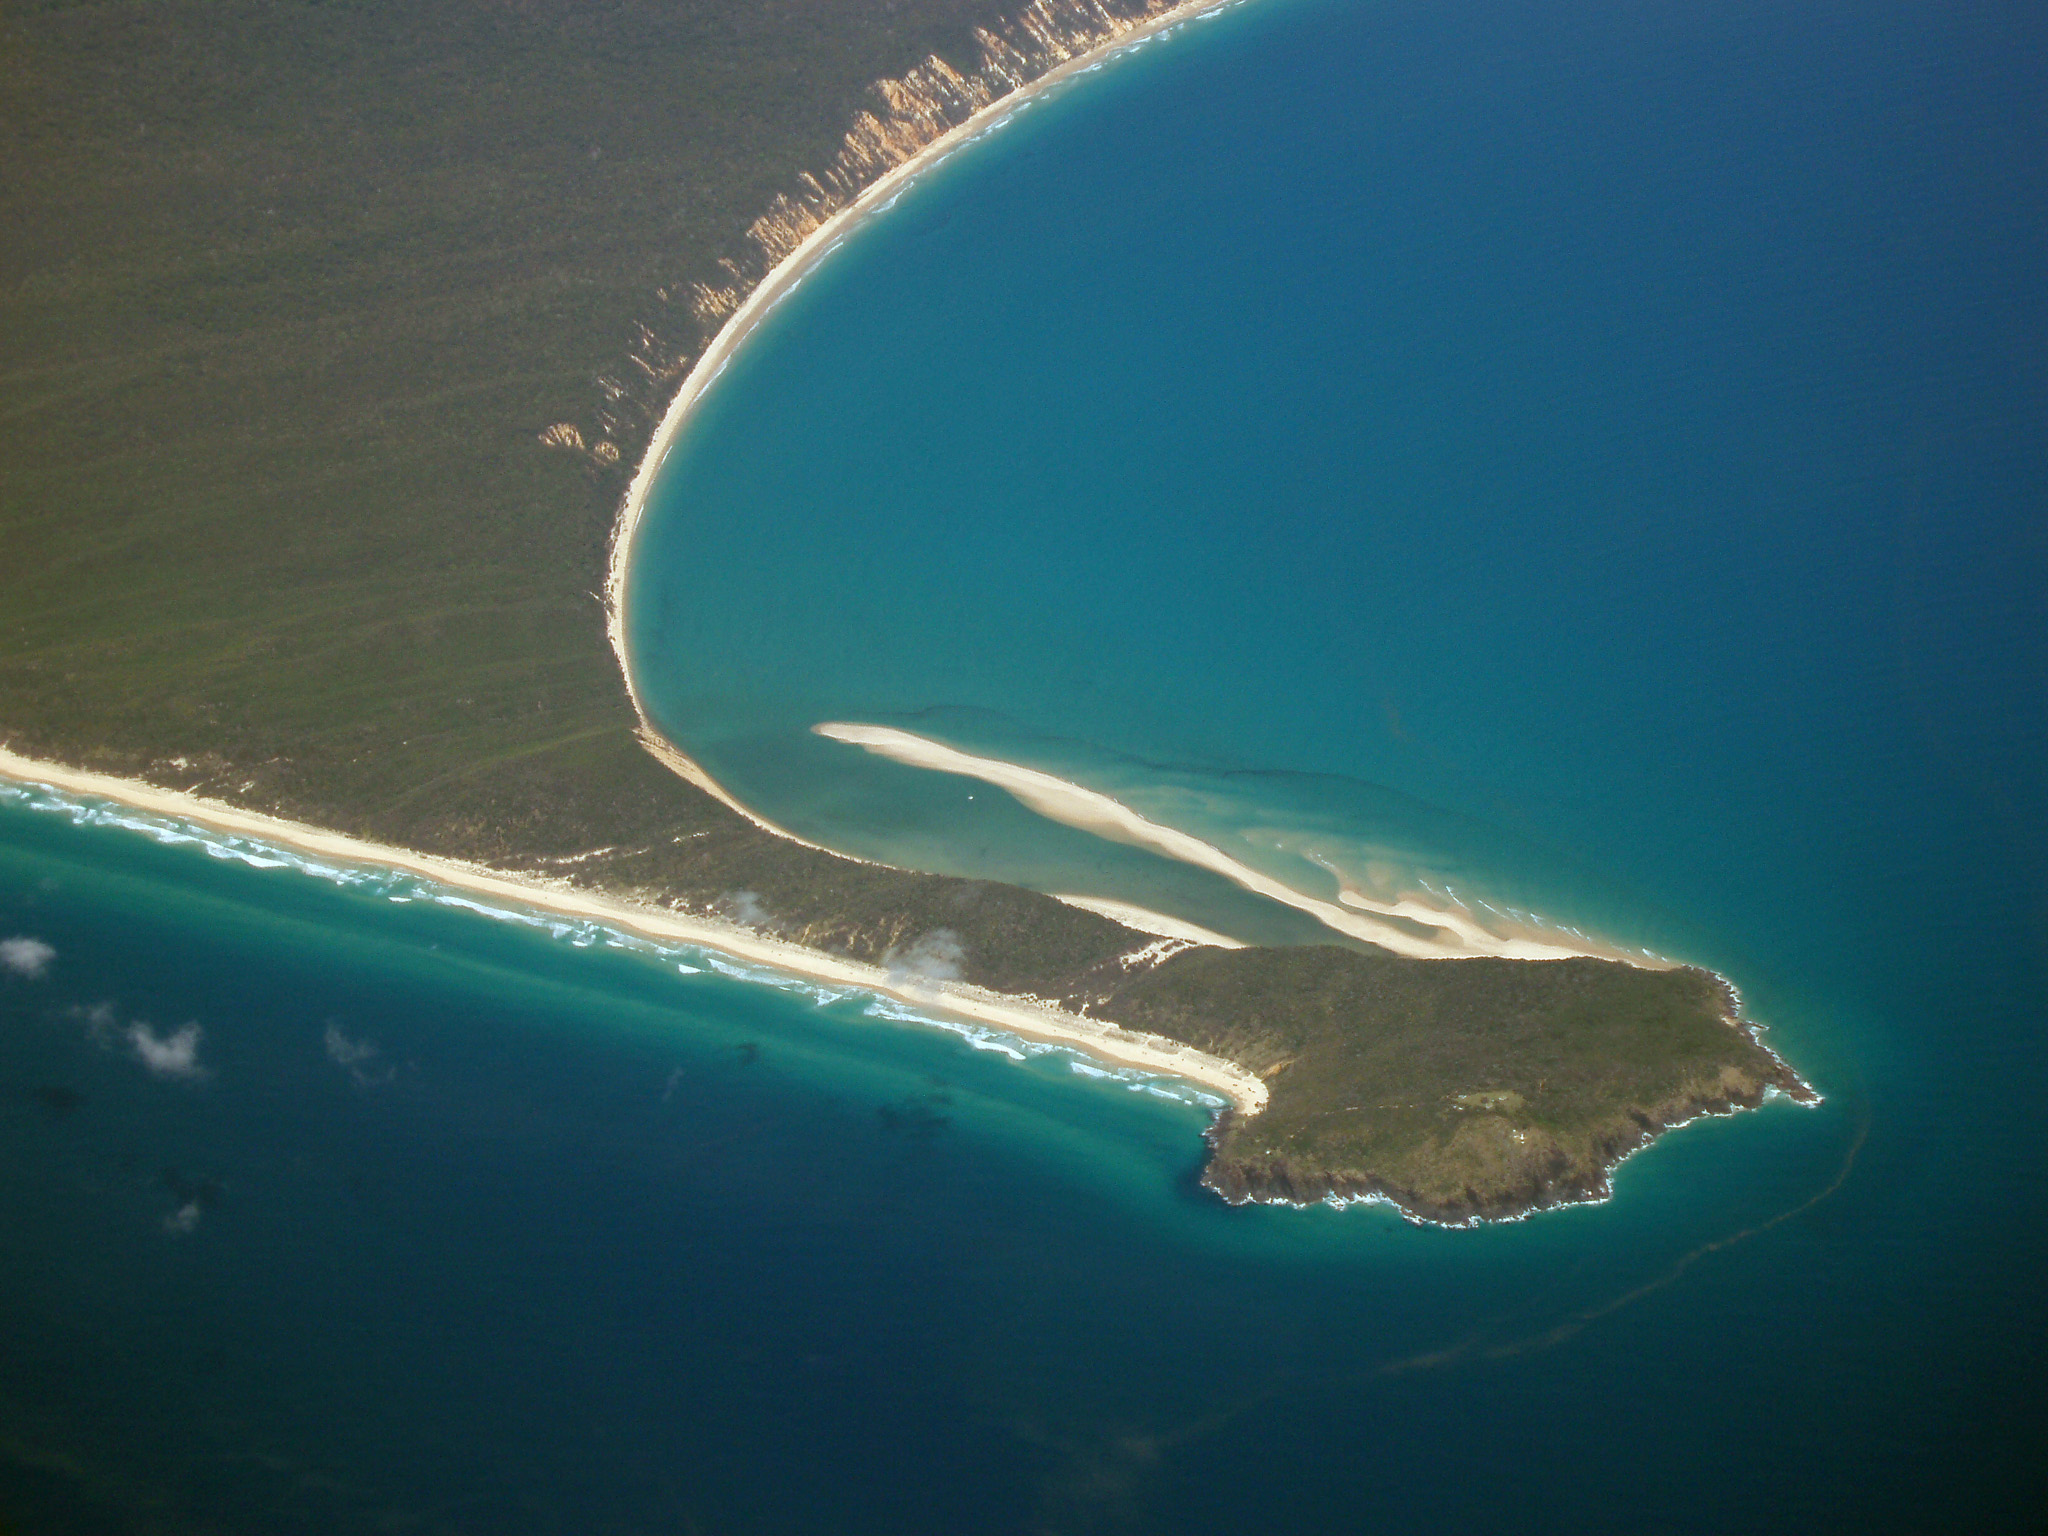 Beautiful Double Island Point at Queensland Surrounded by Blue Water Ocean. Captured in Aerial View